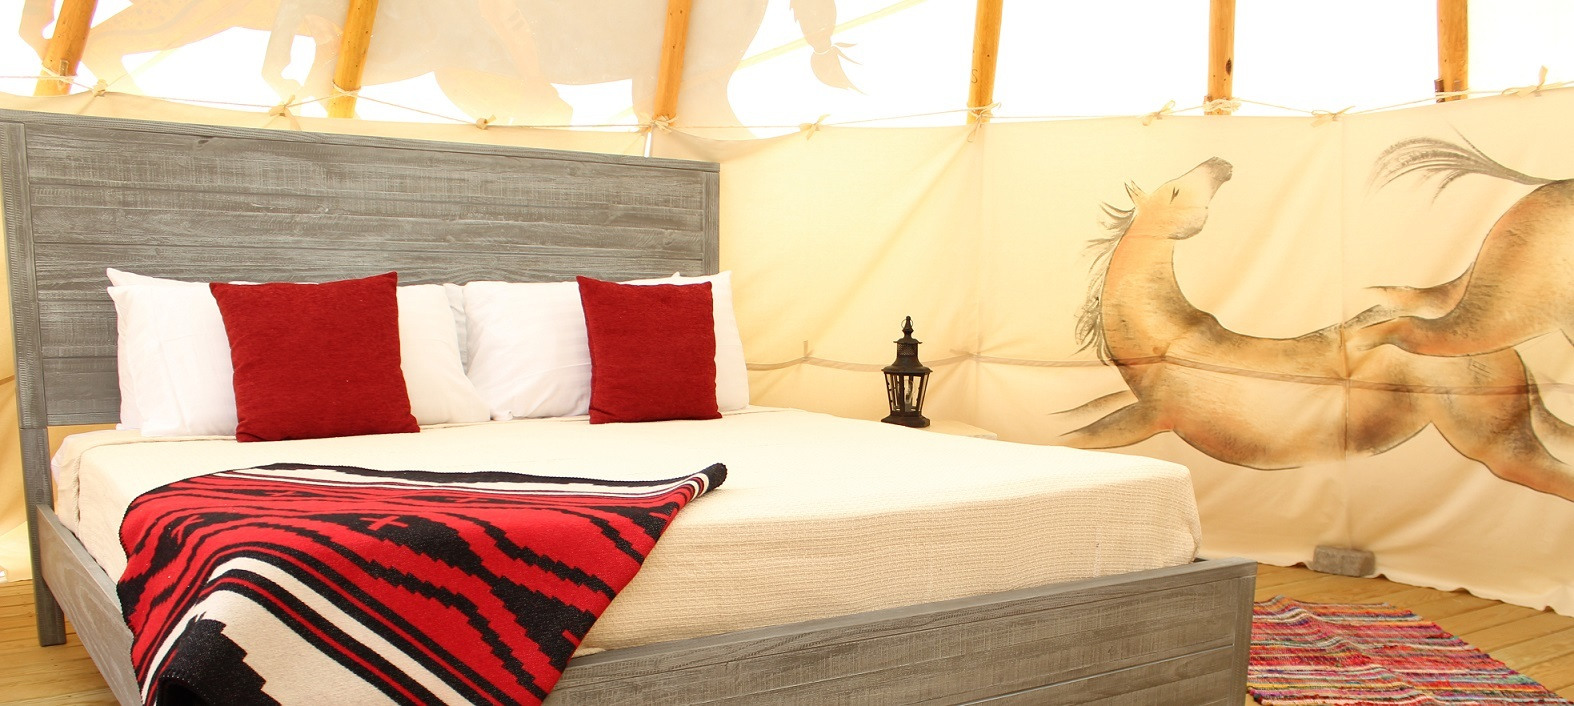 stay in a tipi for one of our wellness retreats